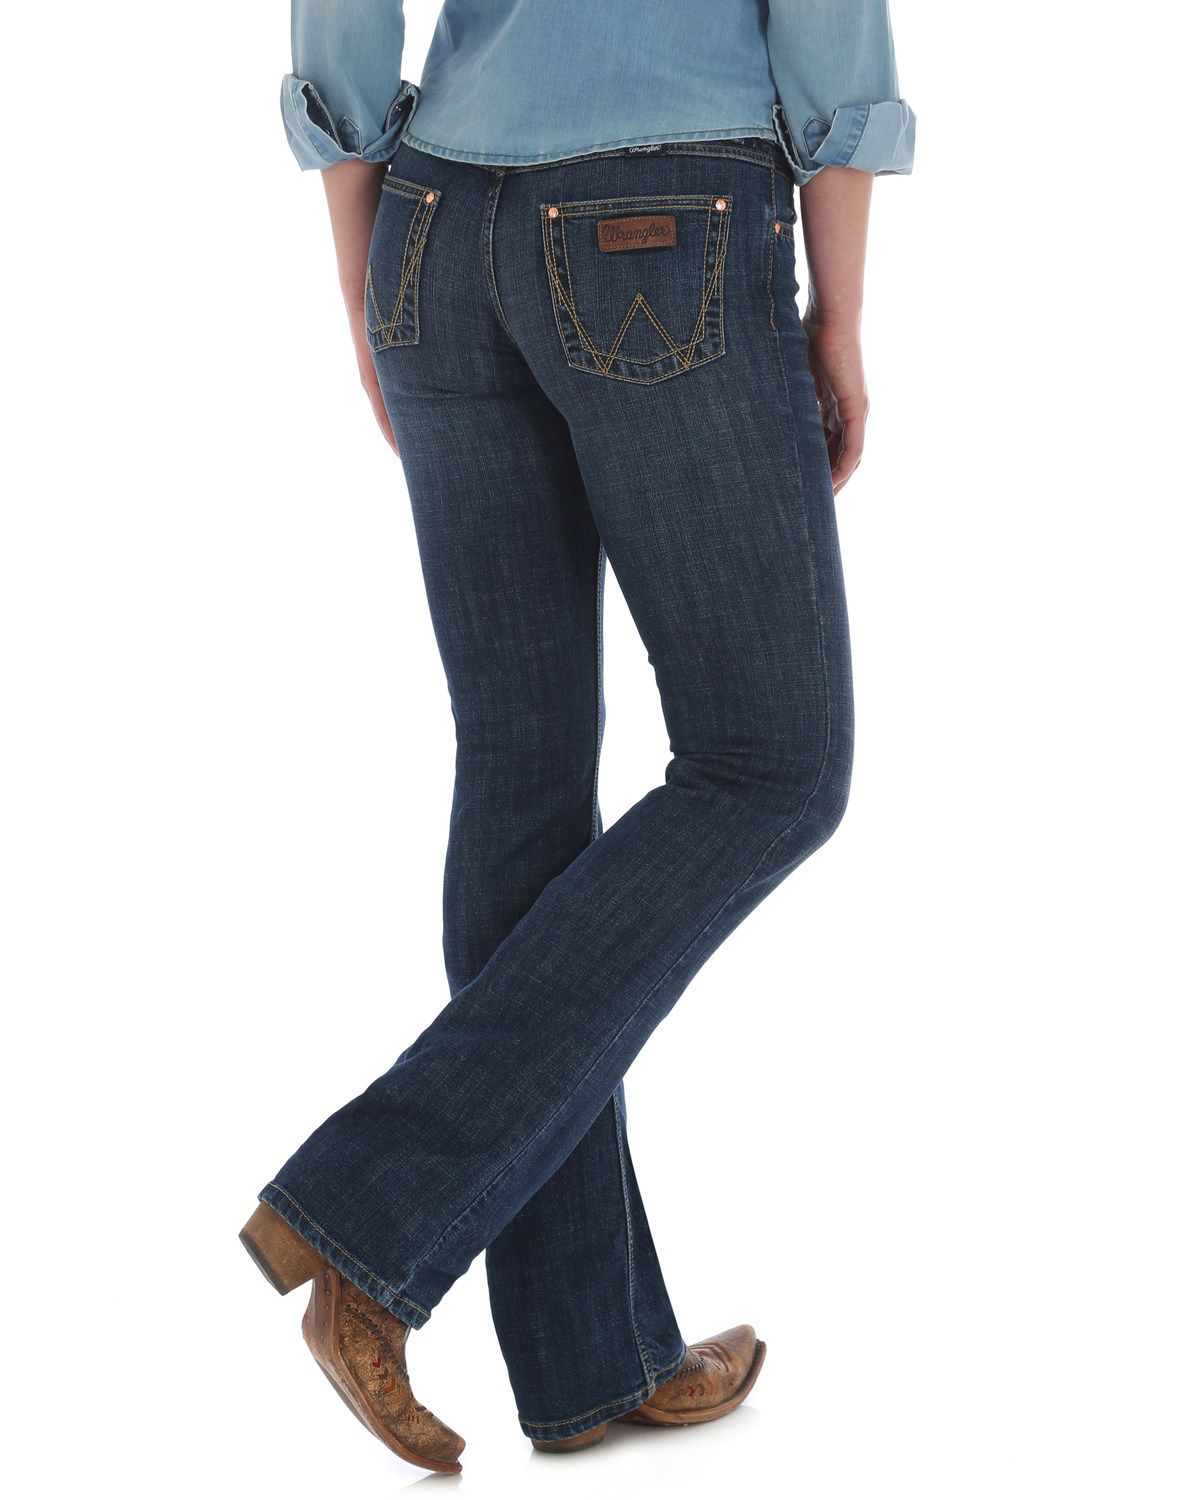 Pin On Cowgirl Style Outfits